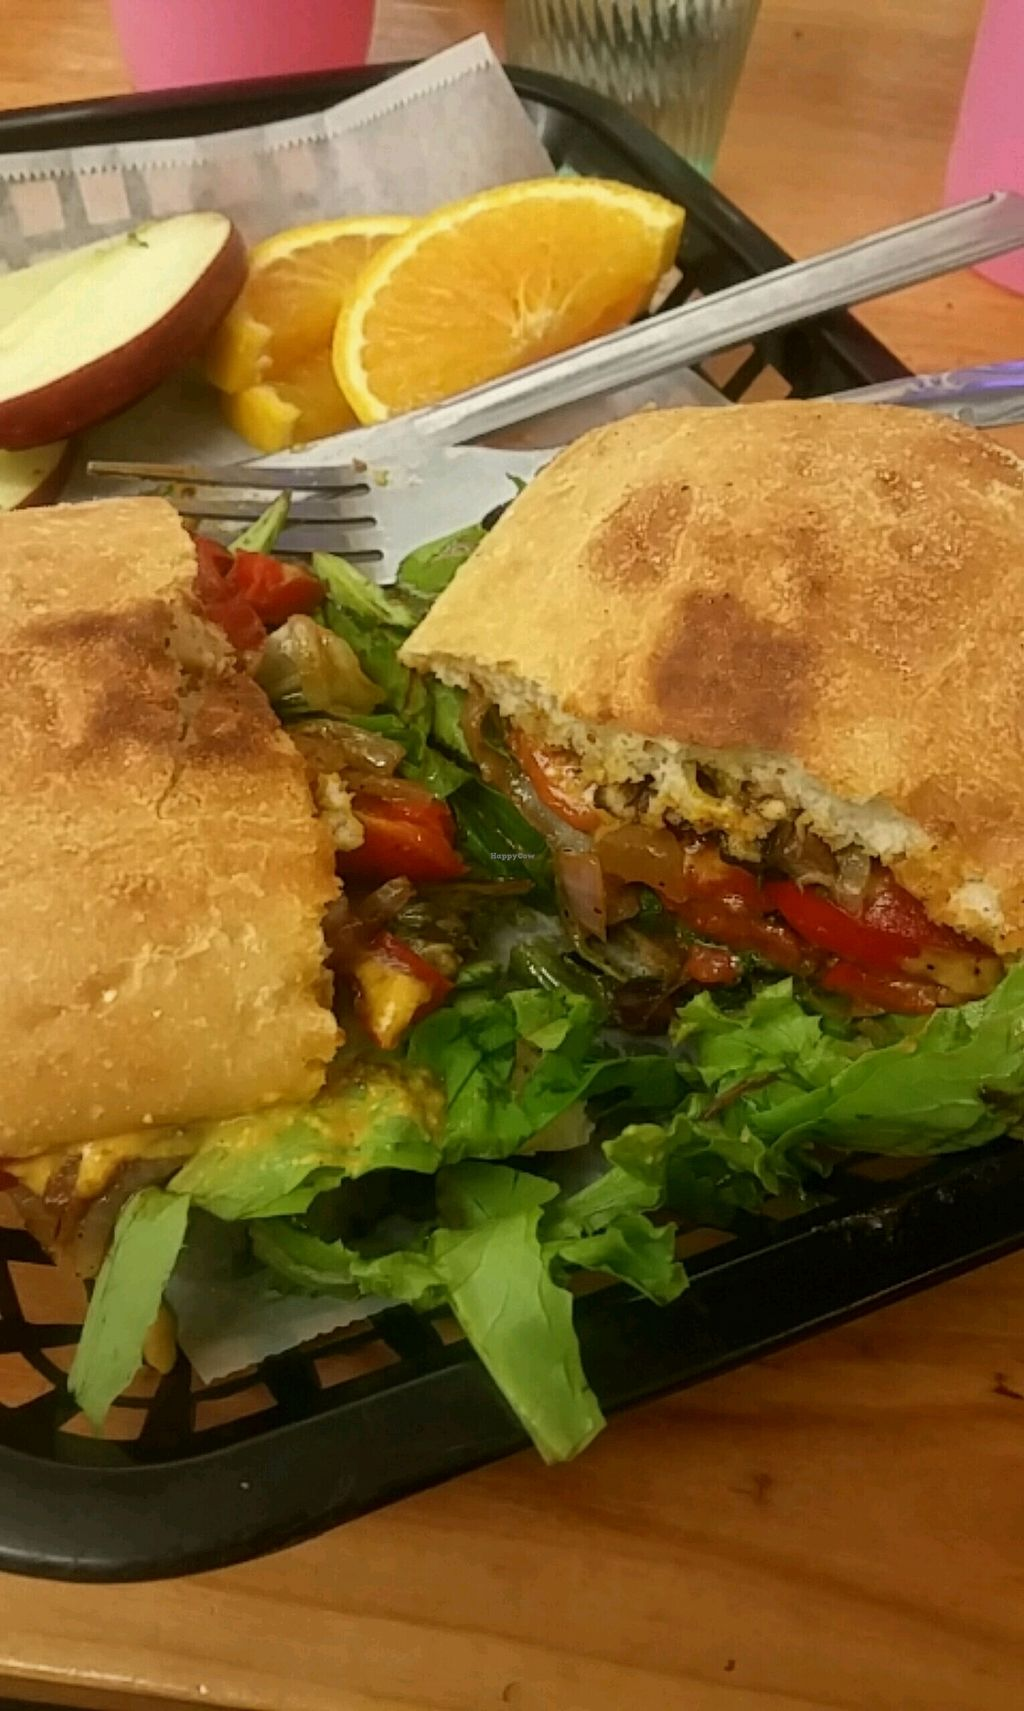 """Photo of 24 Carrots  by <a href=""""/members/profile/LauraRunco"""">LauraRunco</a> <br/>Philly sandwich was AMAZING!  <br/> September 29, 2017  - <a href='/contact/abuse/image/44118/309878'>Report</a>"""